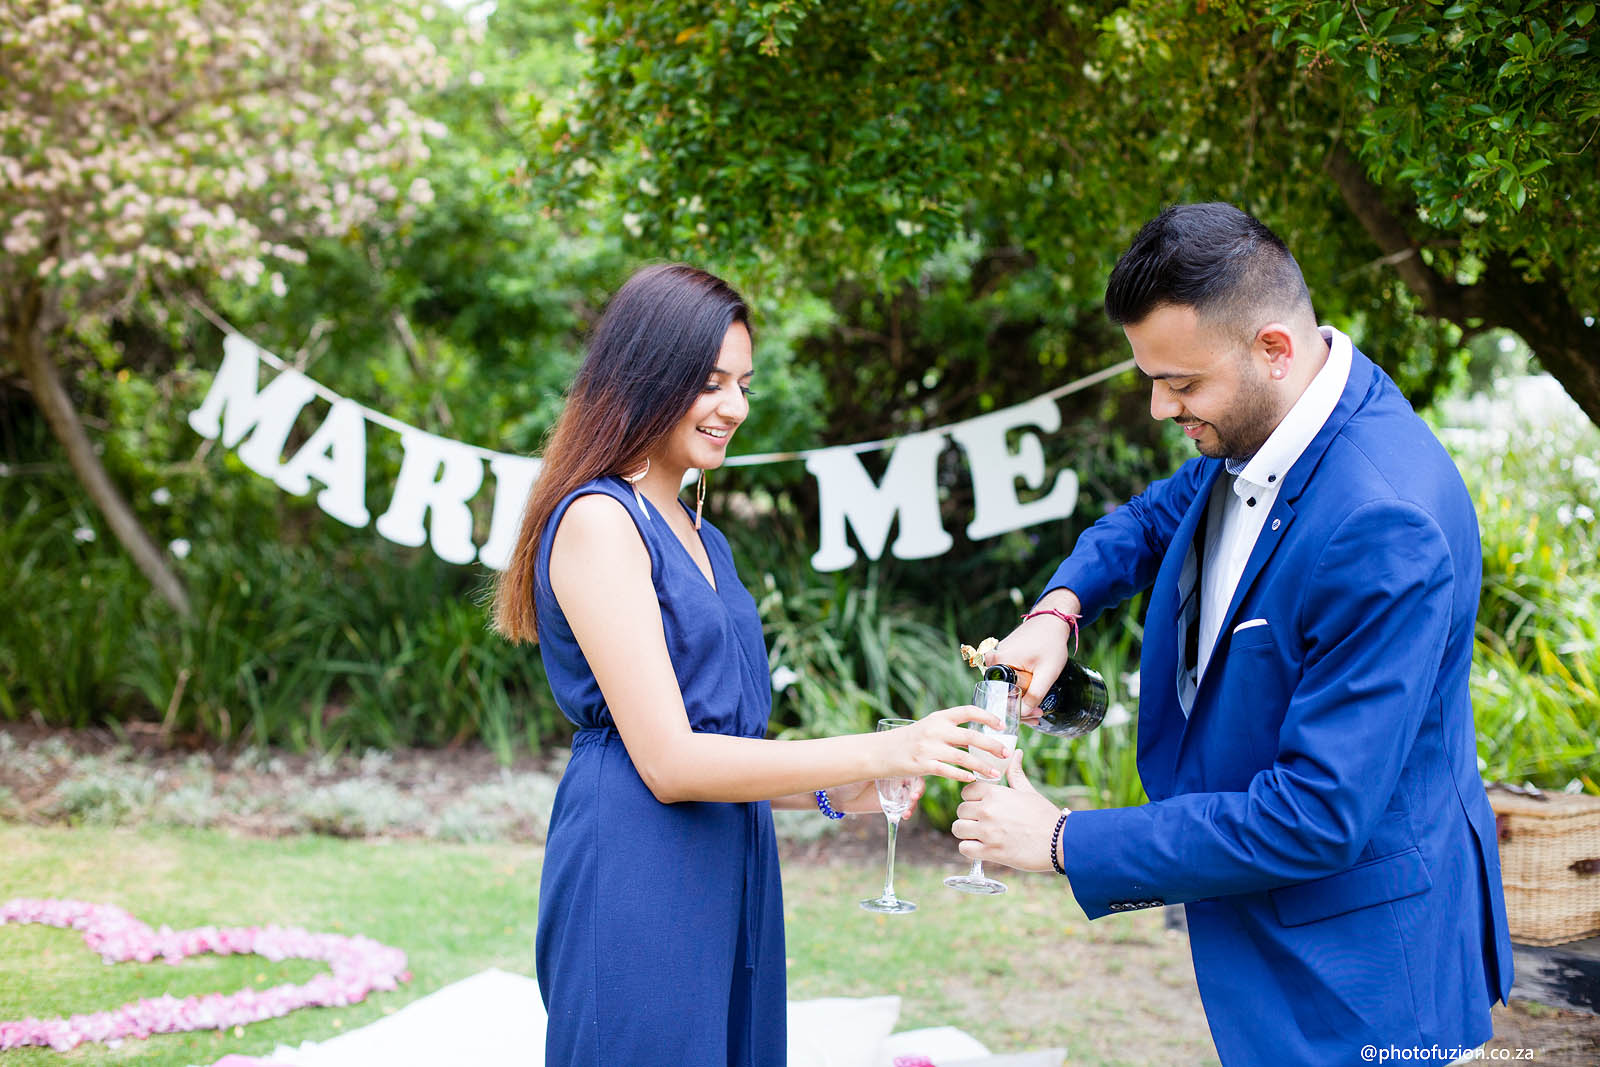 Mishaal and Dharital Proposal at Mount Rochelle